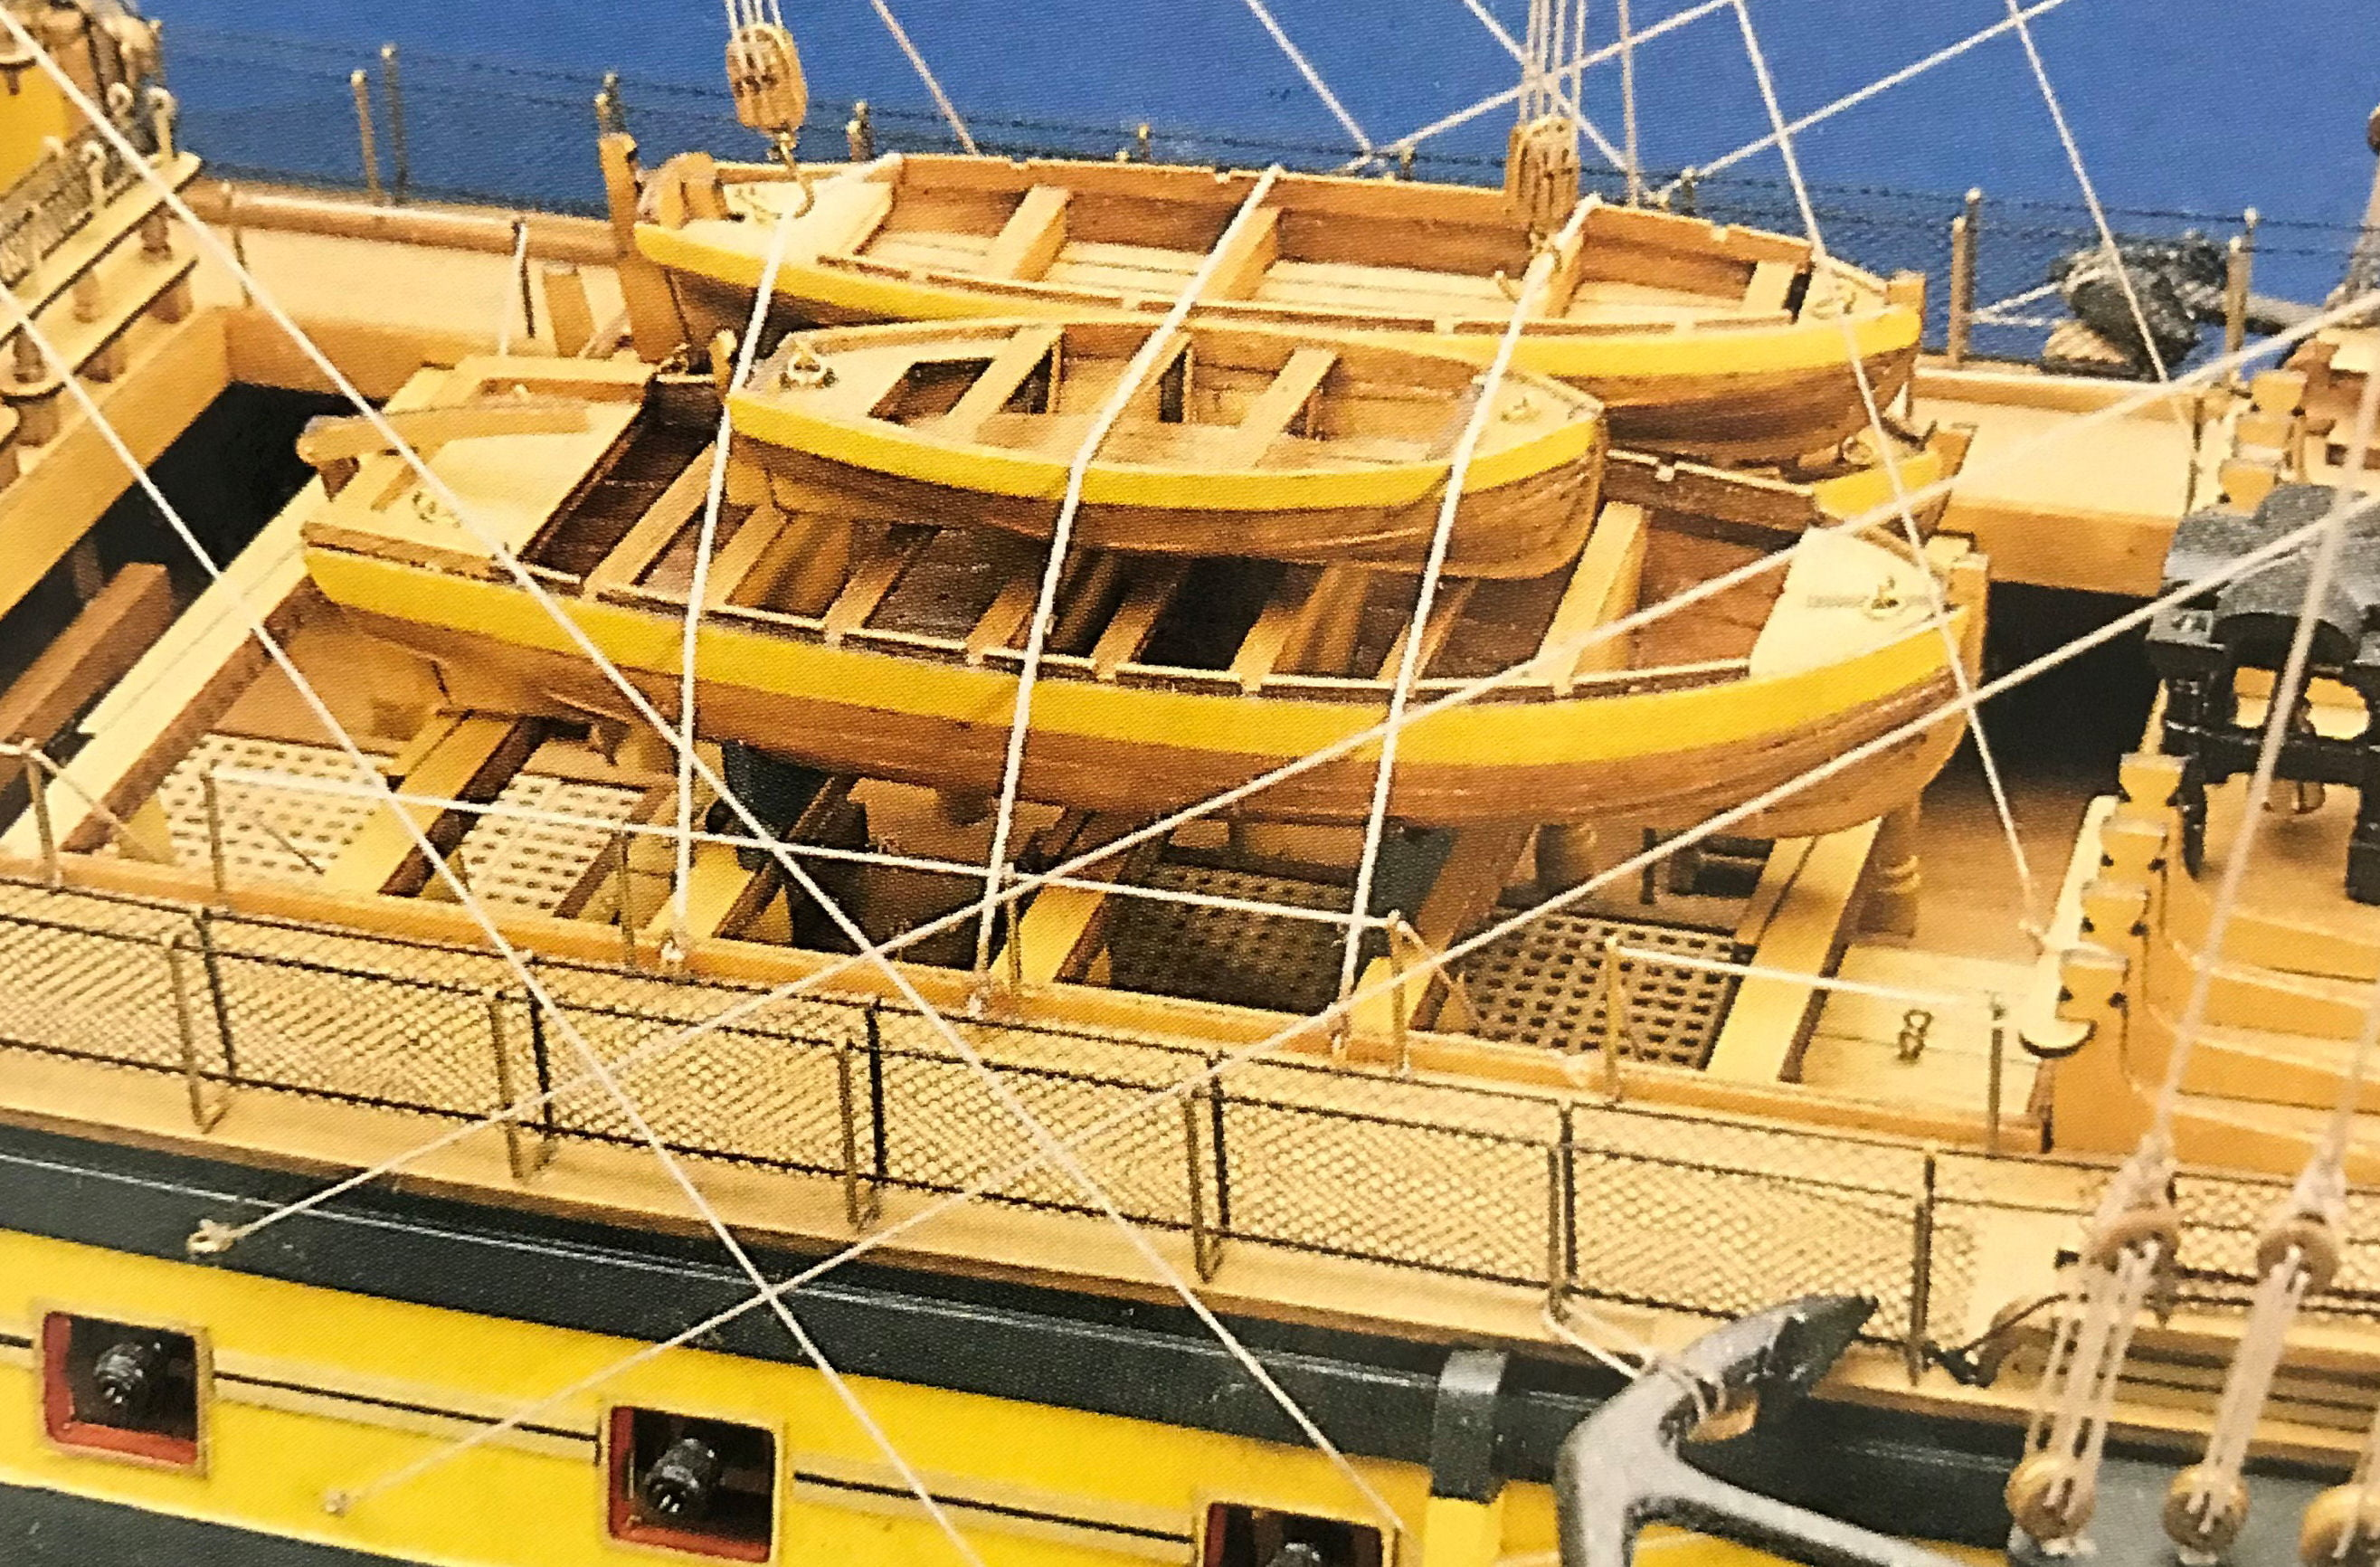 Boat Kits Product : Hms victory high spec model boat kit from mantua hobbies